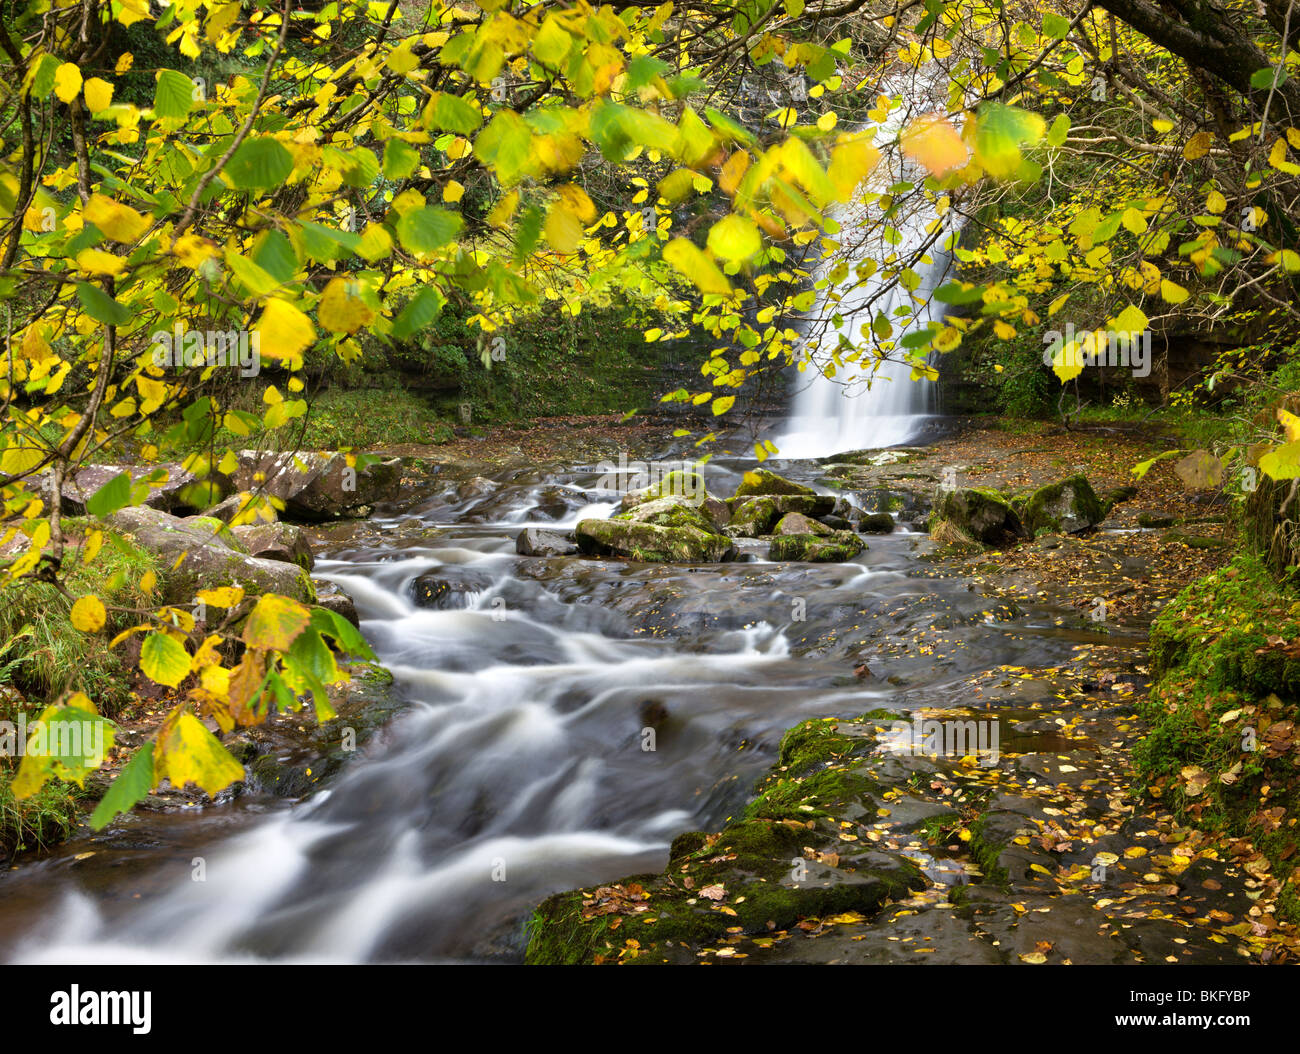 Waterfall on the River Caerfanell at Blaen-y-glyn, Brecon Beacons National Park, Powys, Wales, UK. Autumn (October) Stock Photo